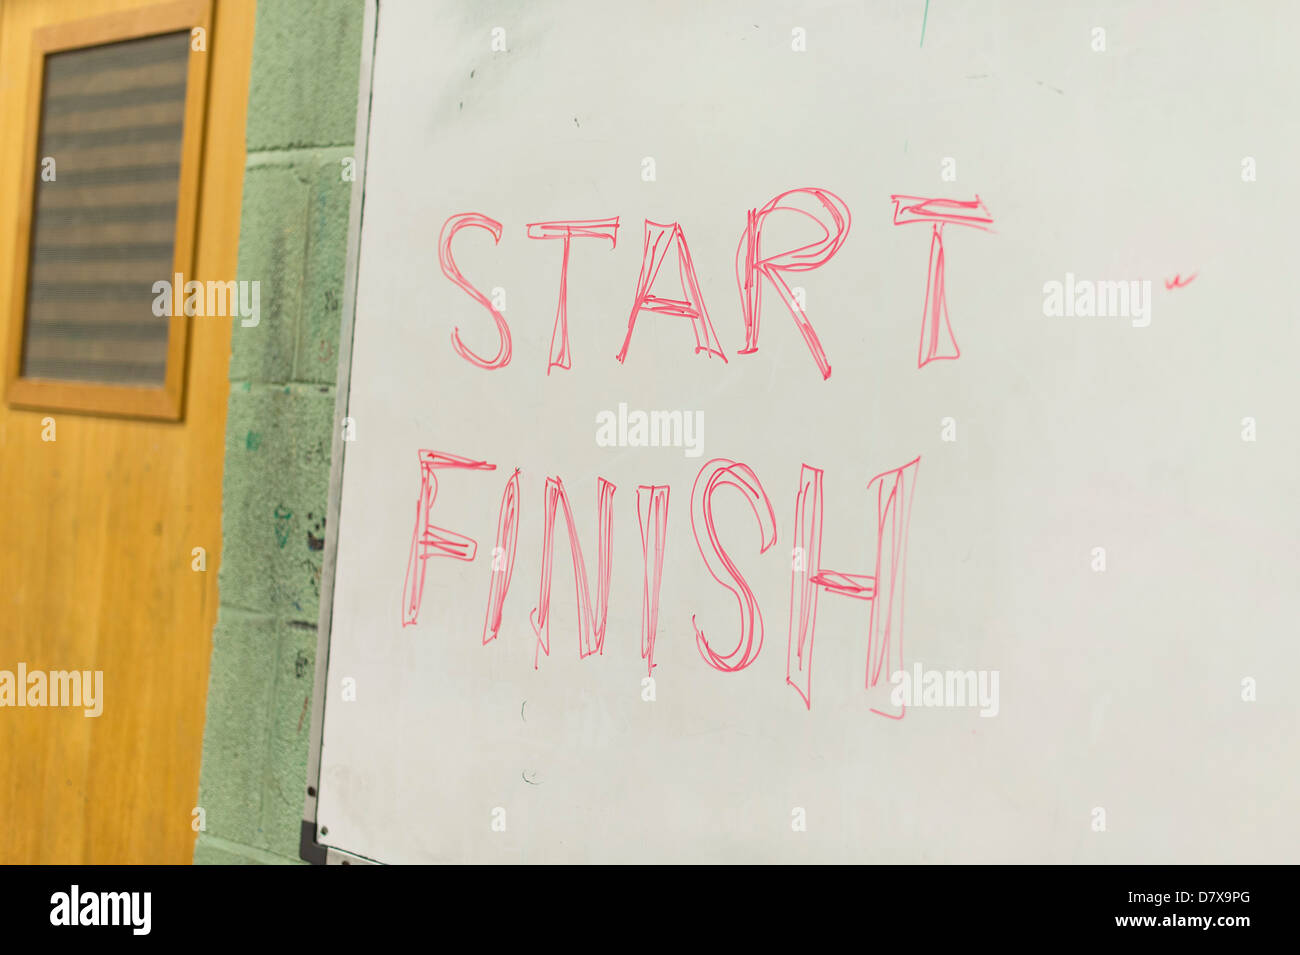 A start and finish sign in an exam hall gcse a level students - Stock Image